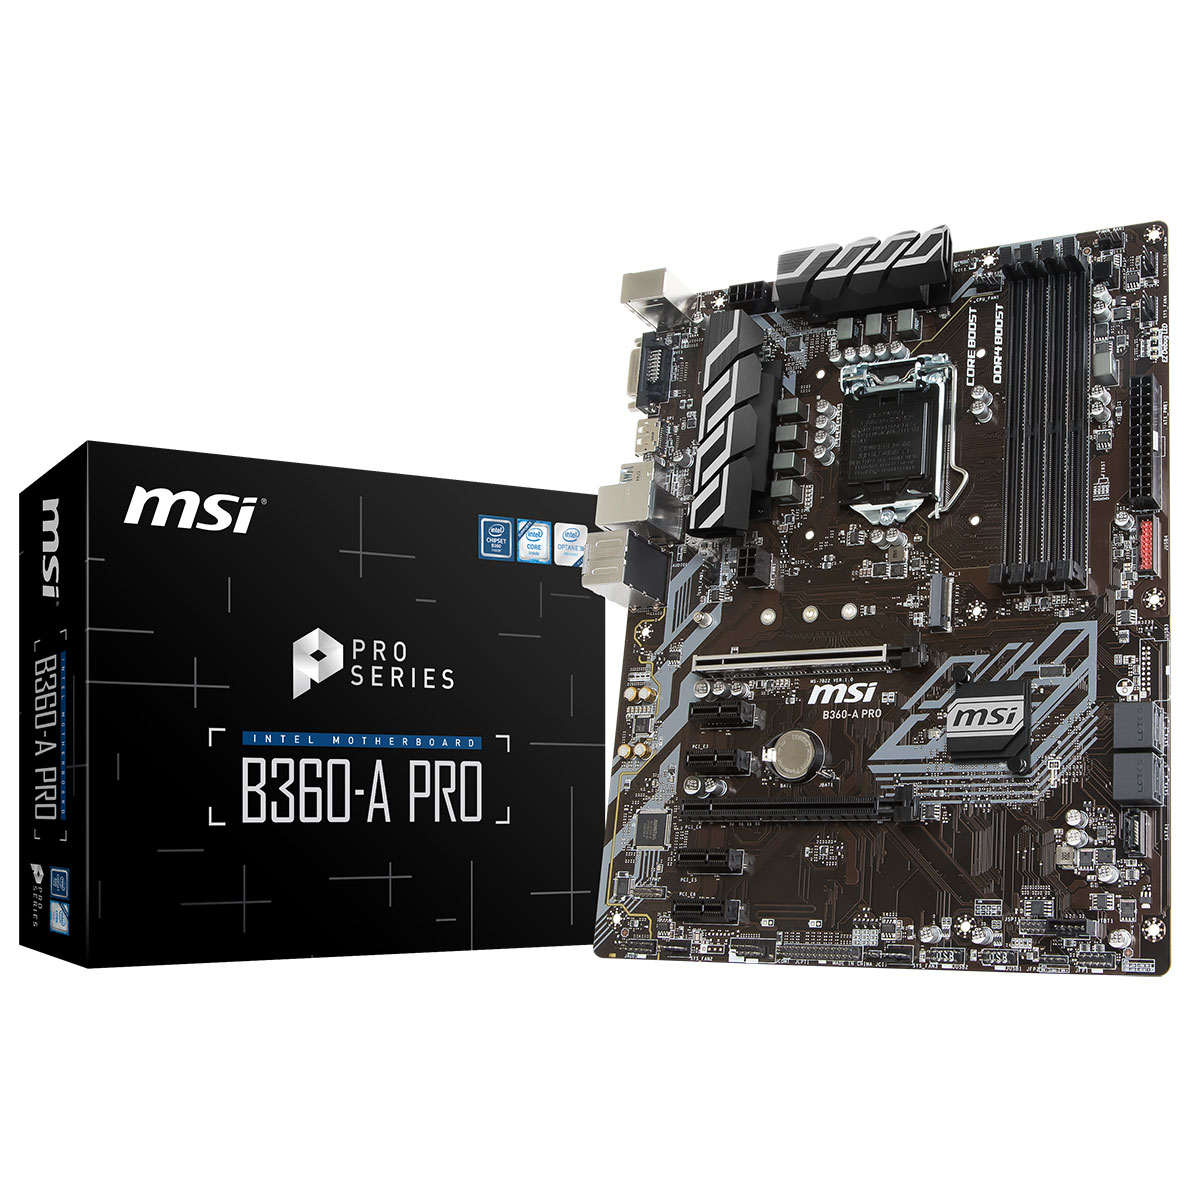 Carte mère MSI B360-A PRO Carte mère ATX Socket 1151 Intel B360 Express - 4x DDR4 - SATA 6Gb/s + M.2 - USB 3.1 - 2x PCI-Express 3.0 16x